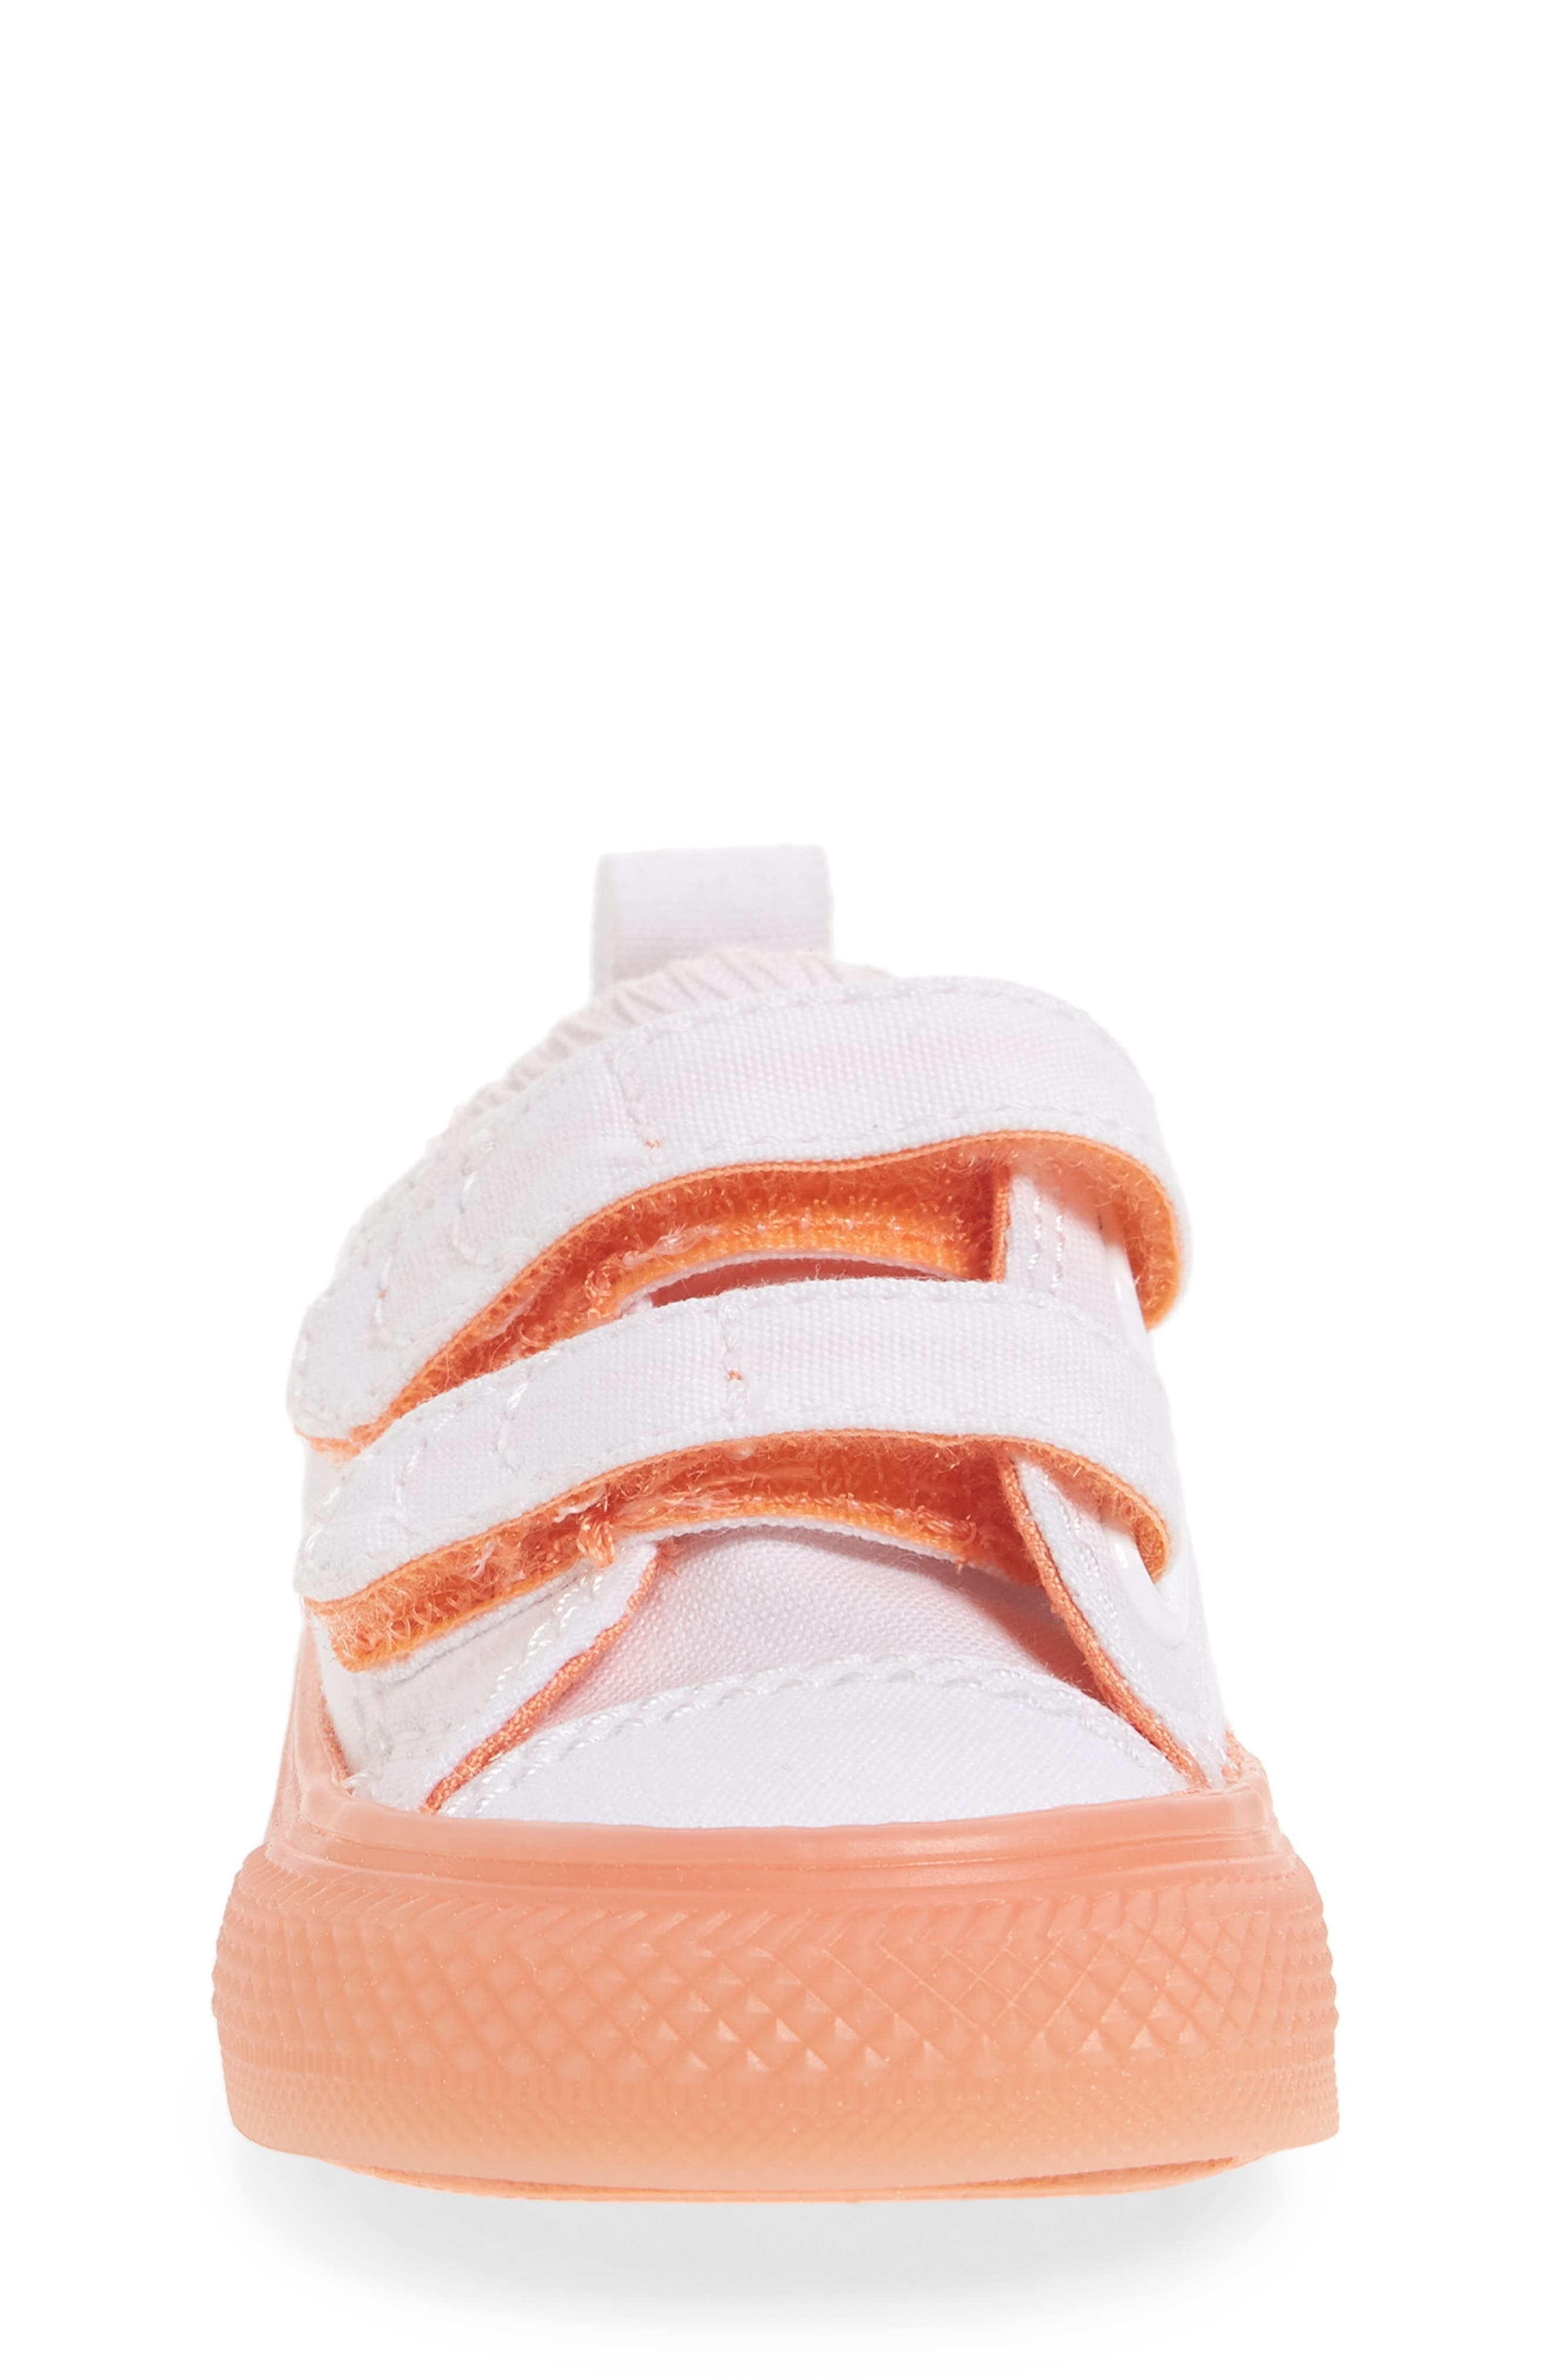 Chuck Taylor<sup>®</sup> All Star<sup>®</sup> Jelly Sneaker,                             Alternate thumbnail 4, color,                             Orange